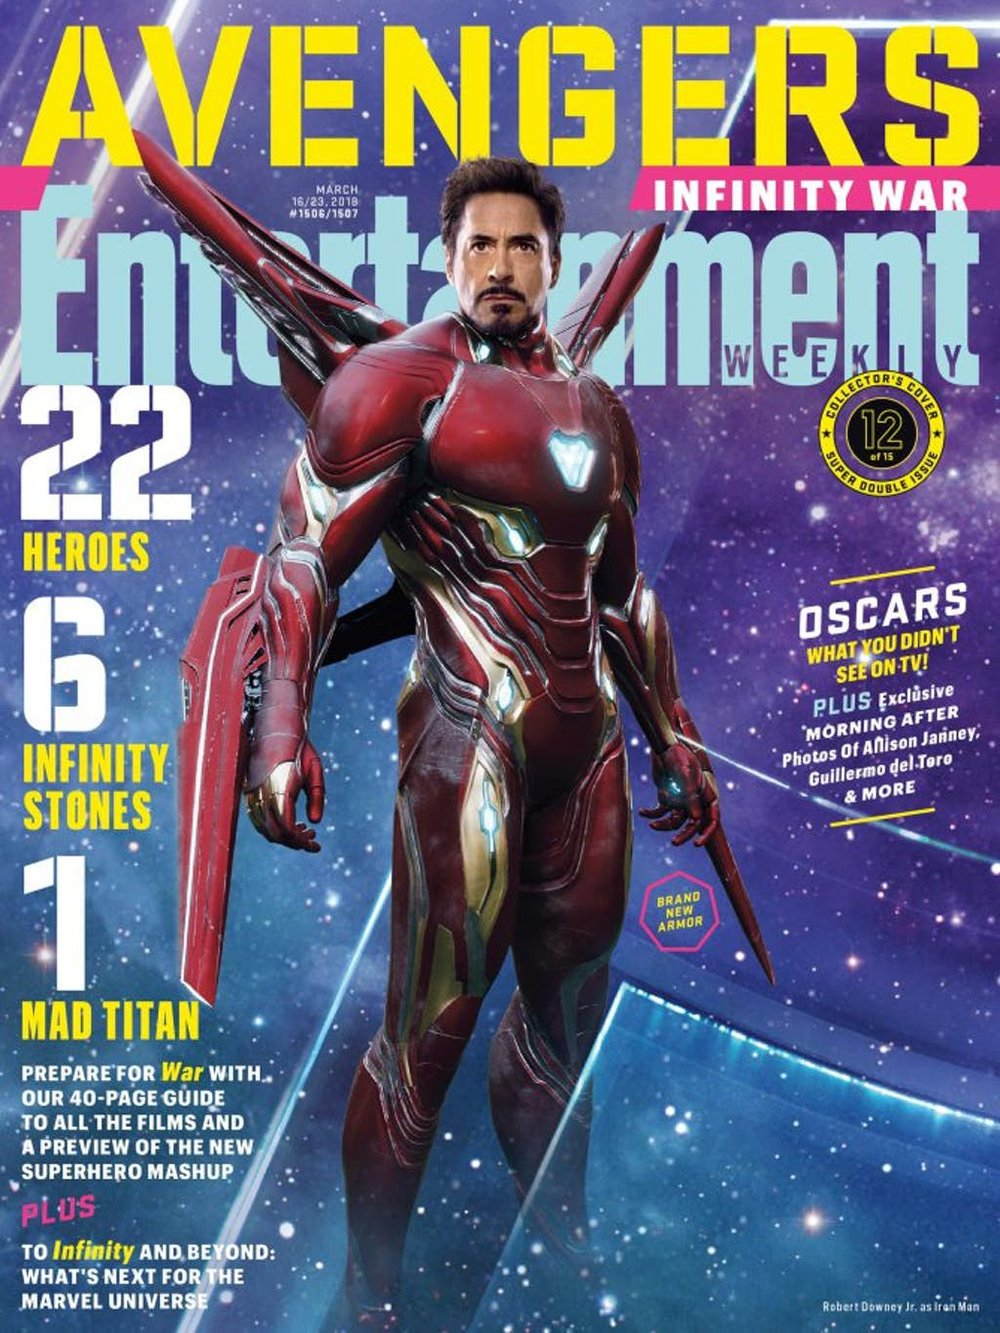 22-avengers-infinity-war-characters-featured-on-15-ew-magazine-covers2